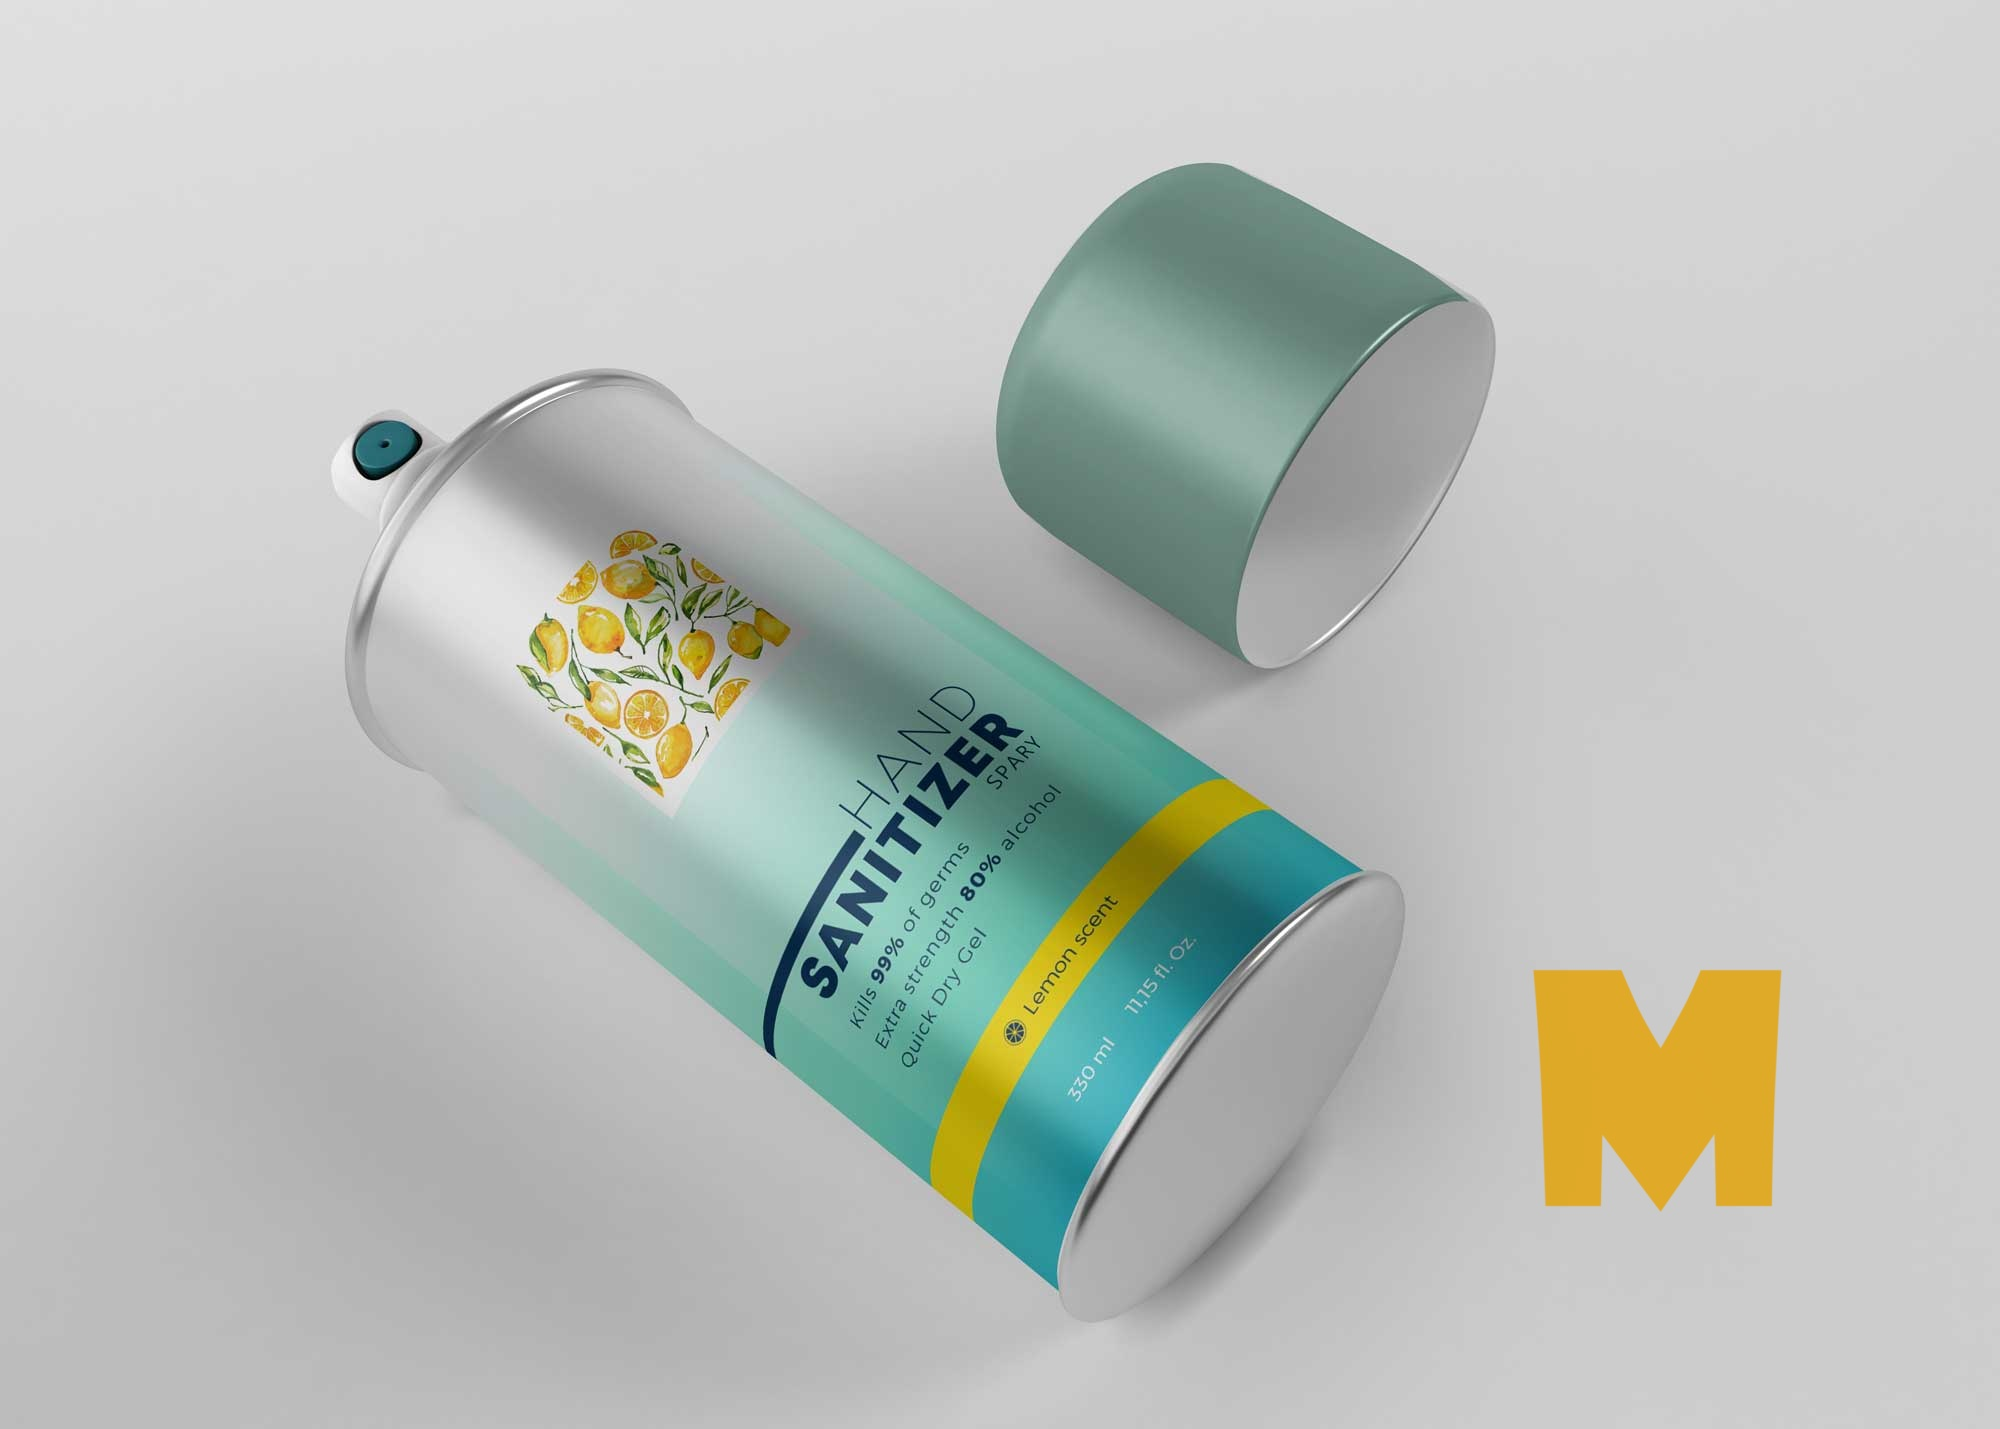 Sanitizer Air Spray Mockup